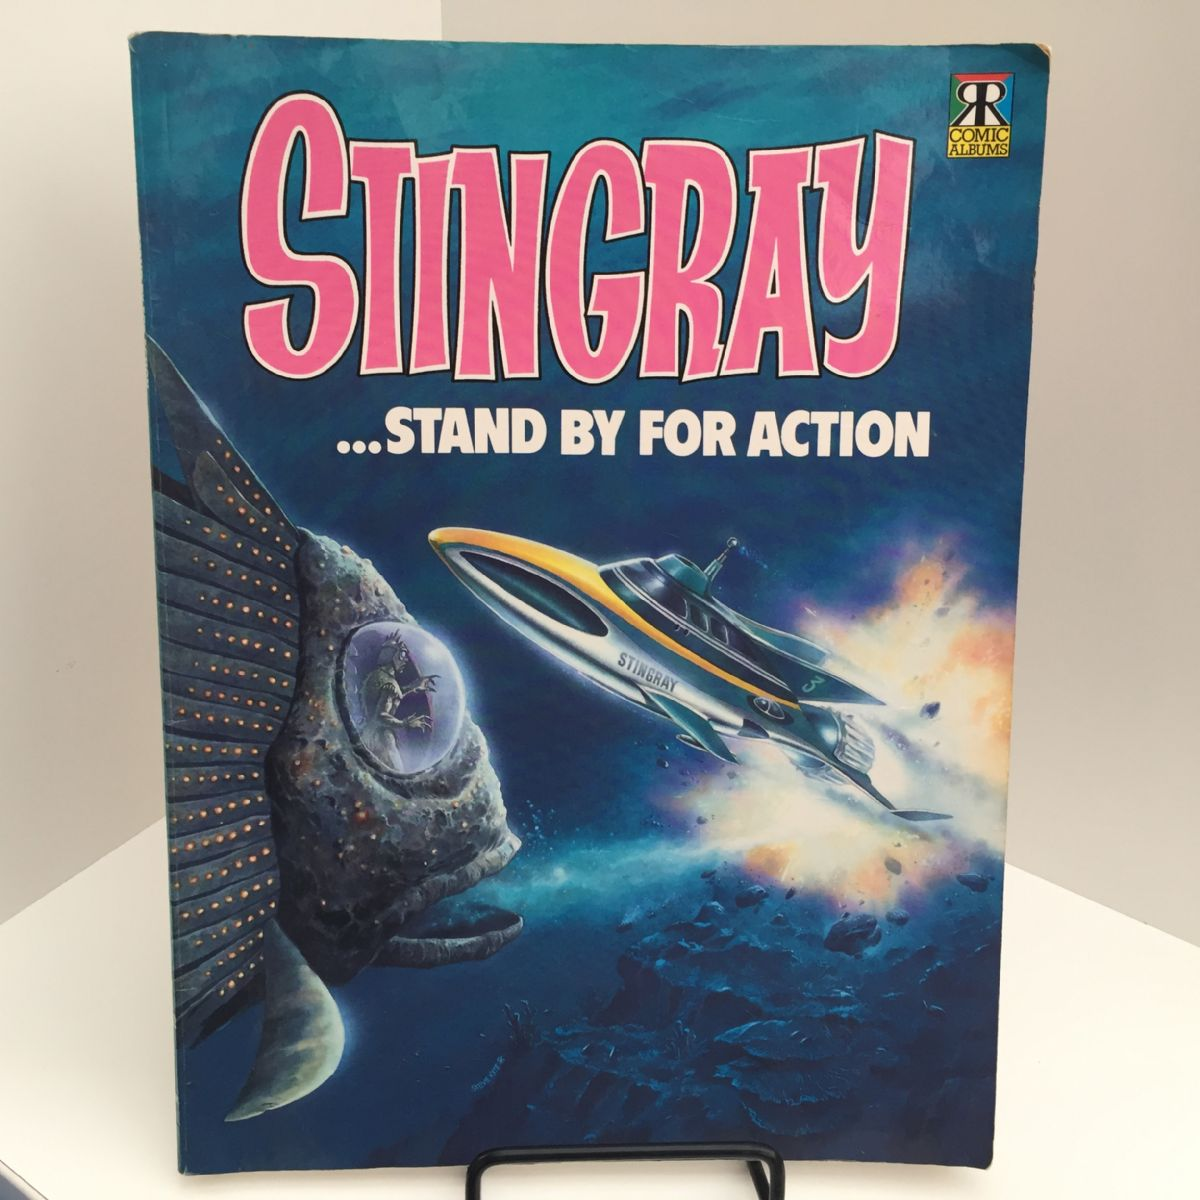 Stingray - Stand by for Action